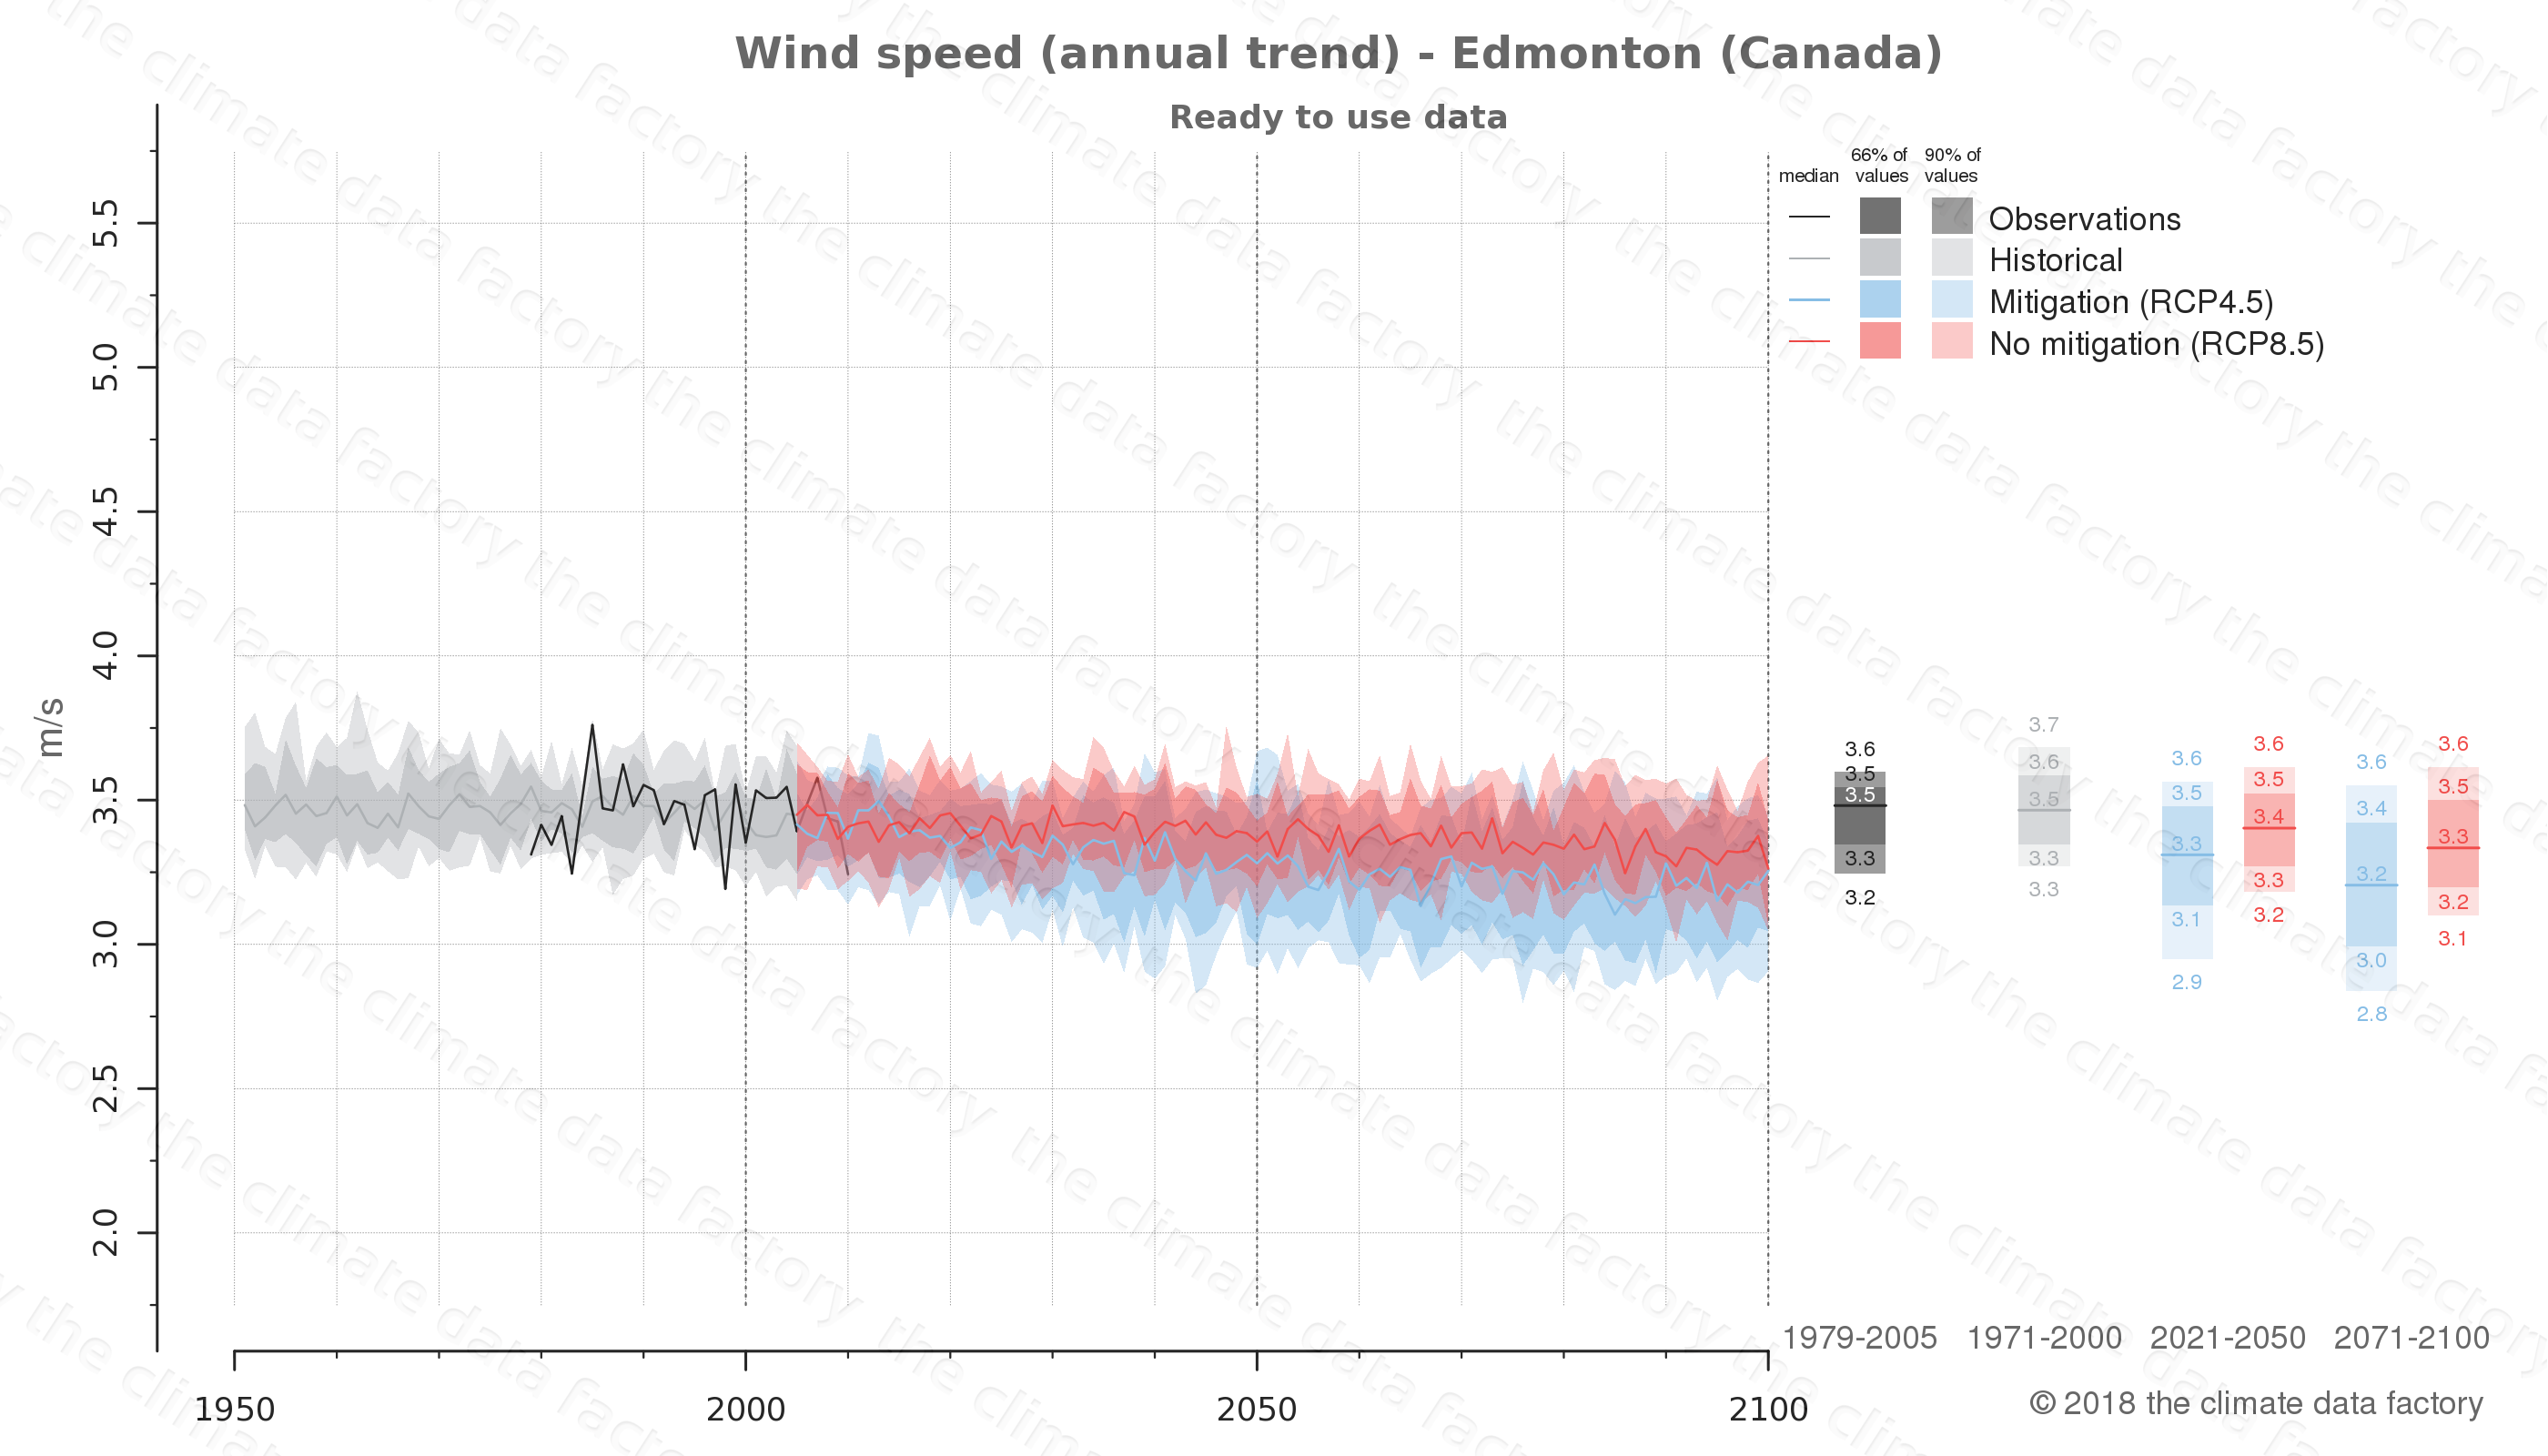 climate change data policy adaptation climate graph city data wind-speed edmonton canada